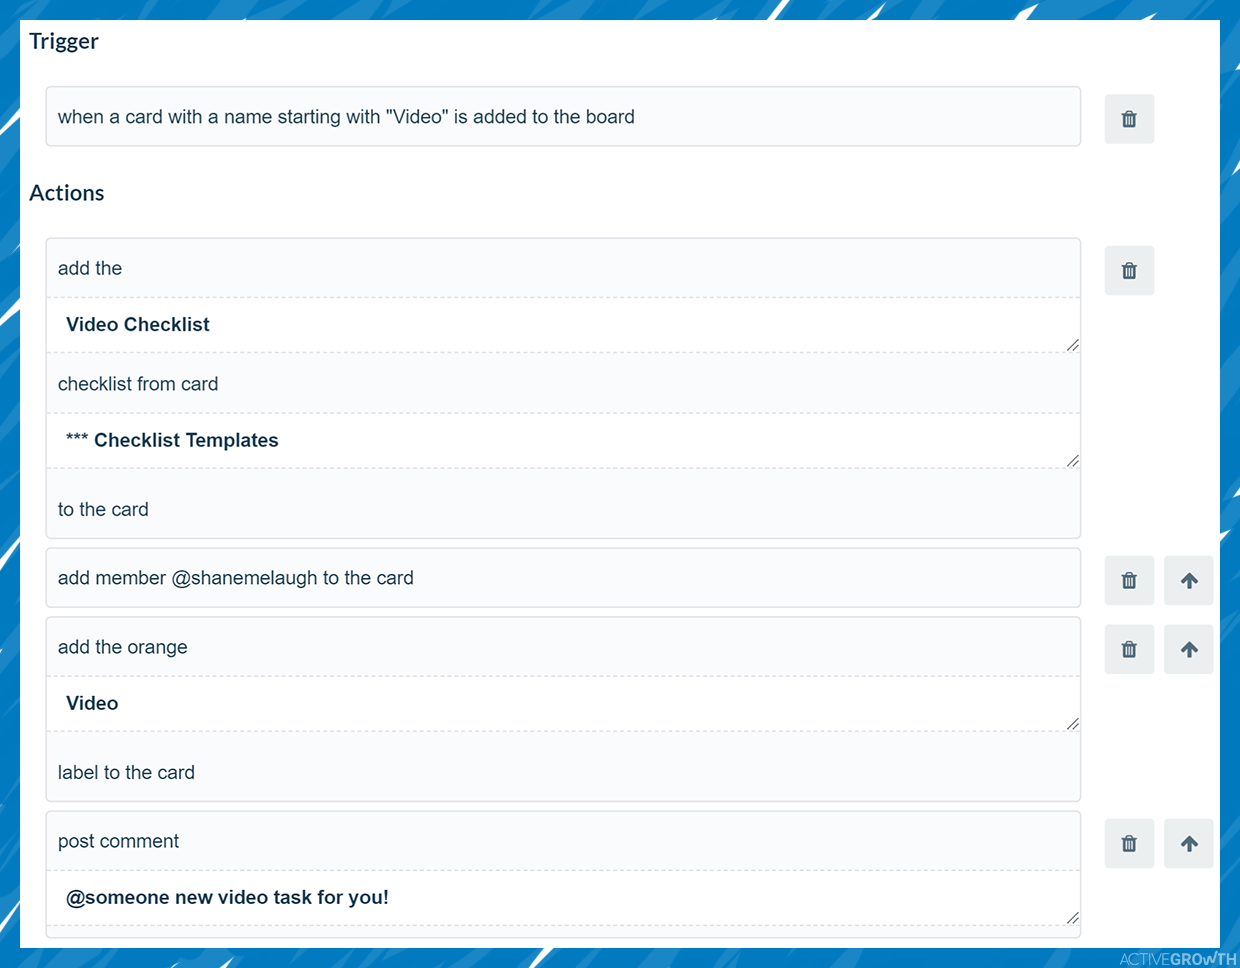 Add a whole series of automated steps based on a word in the card title